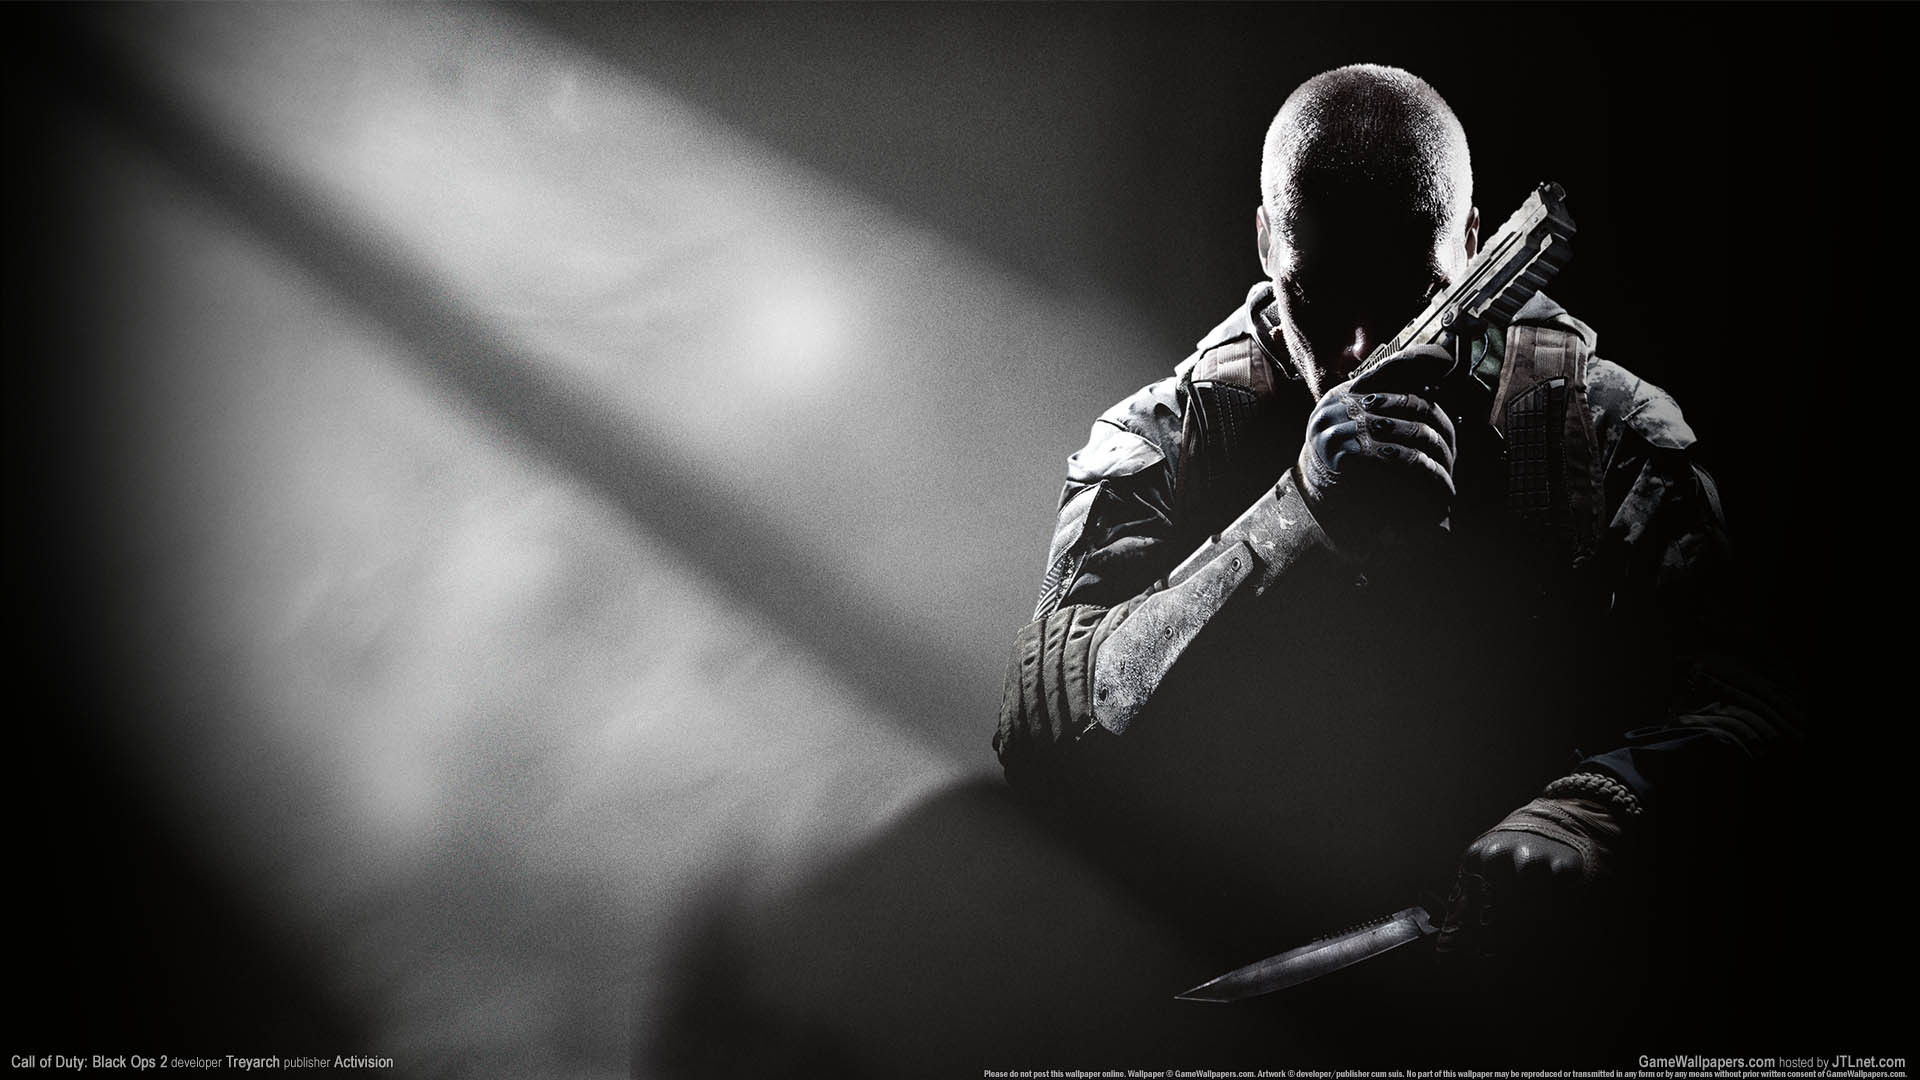 … Call of Duty: Black Ops 2 wallpaper or background 01